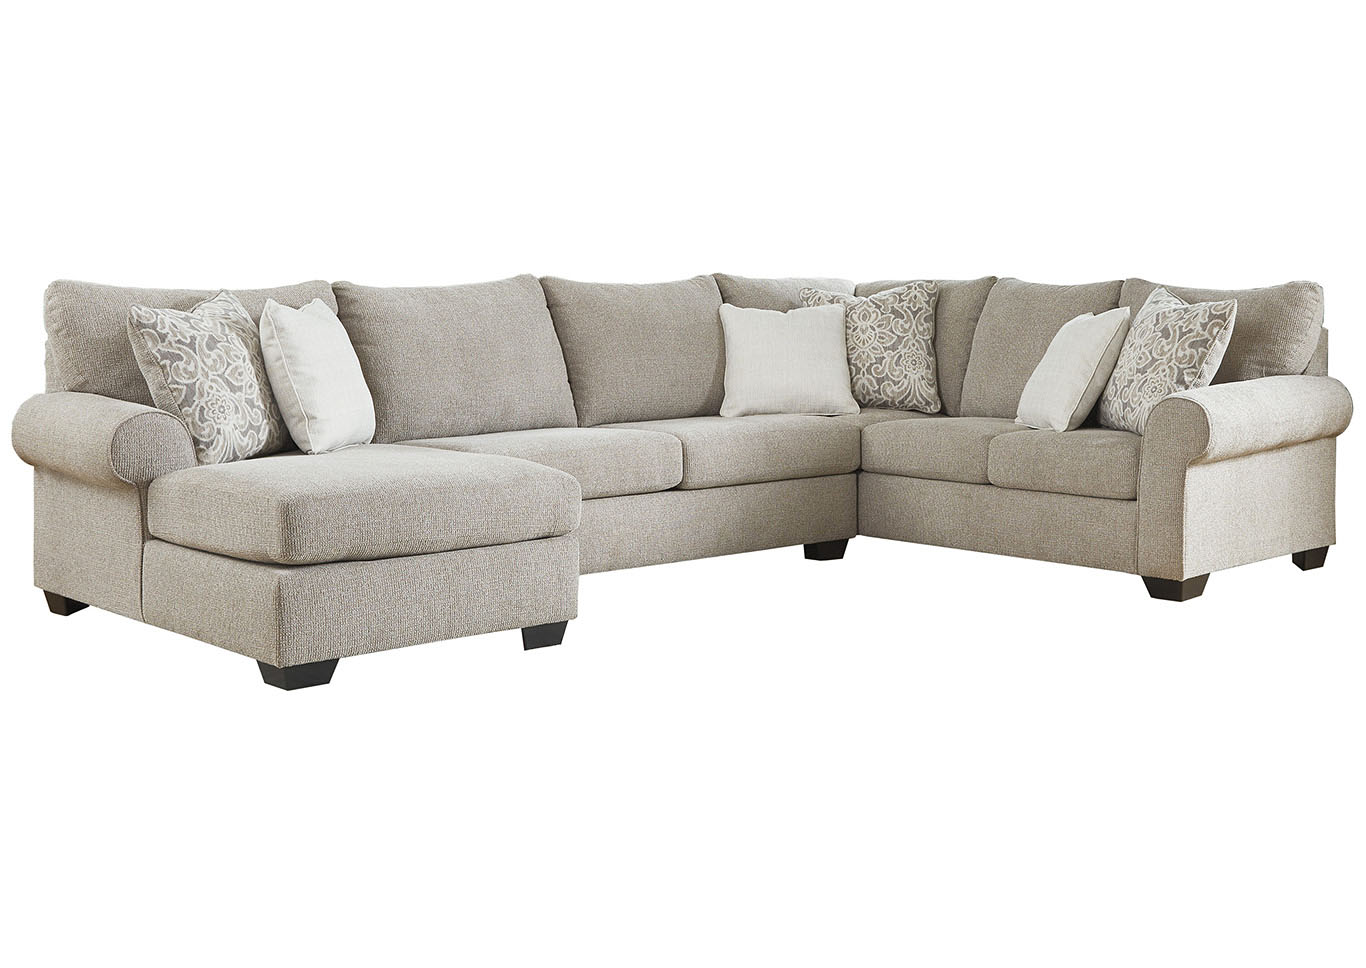 Jarons Baranello Stone LAF Chaise End Sectional